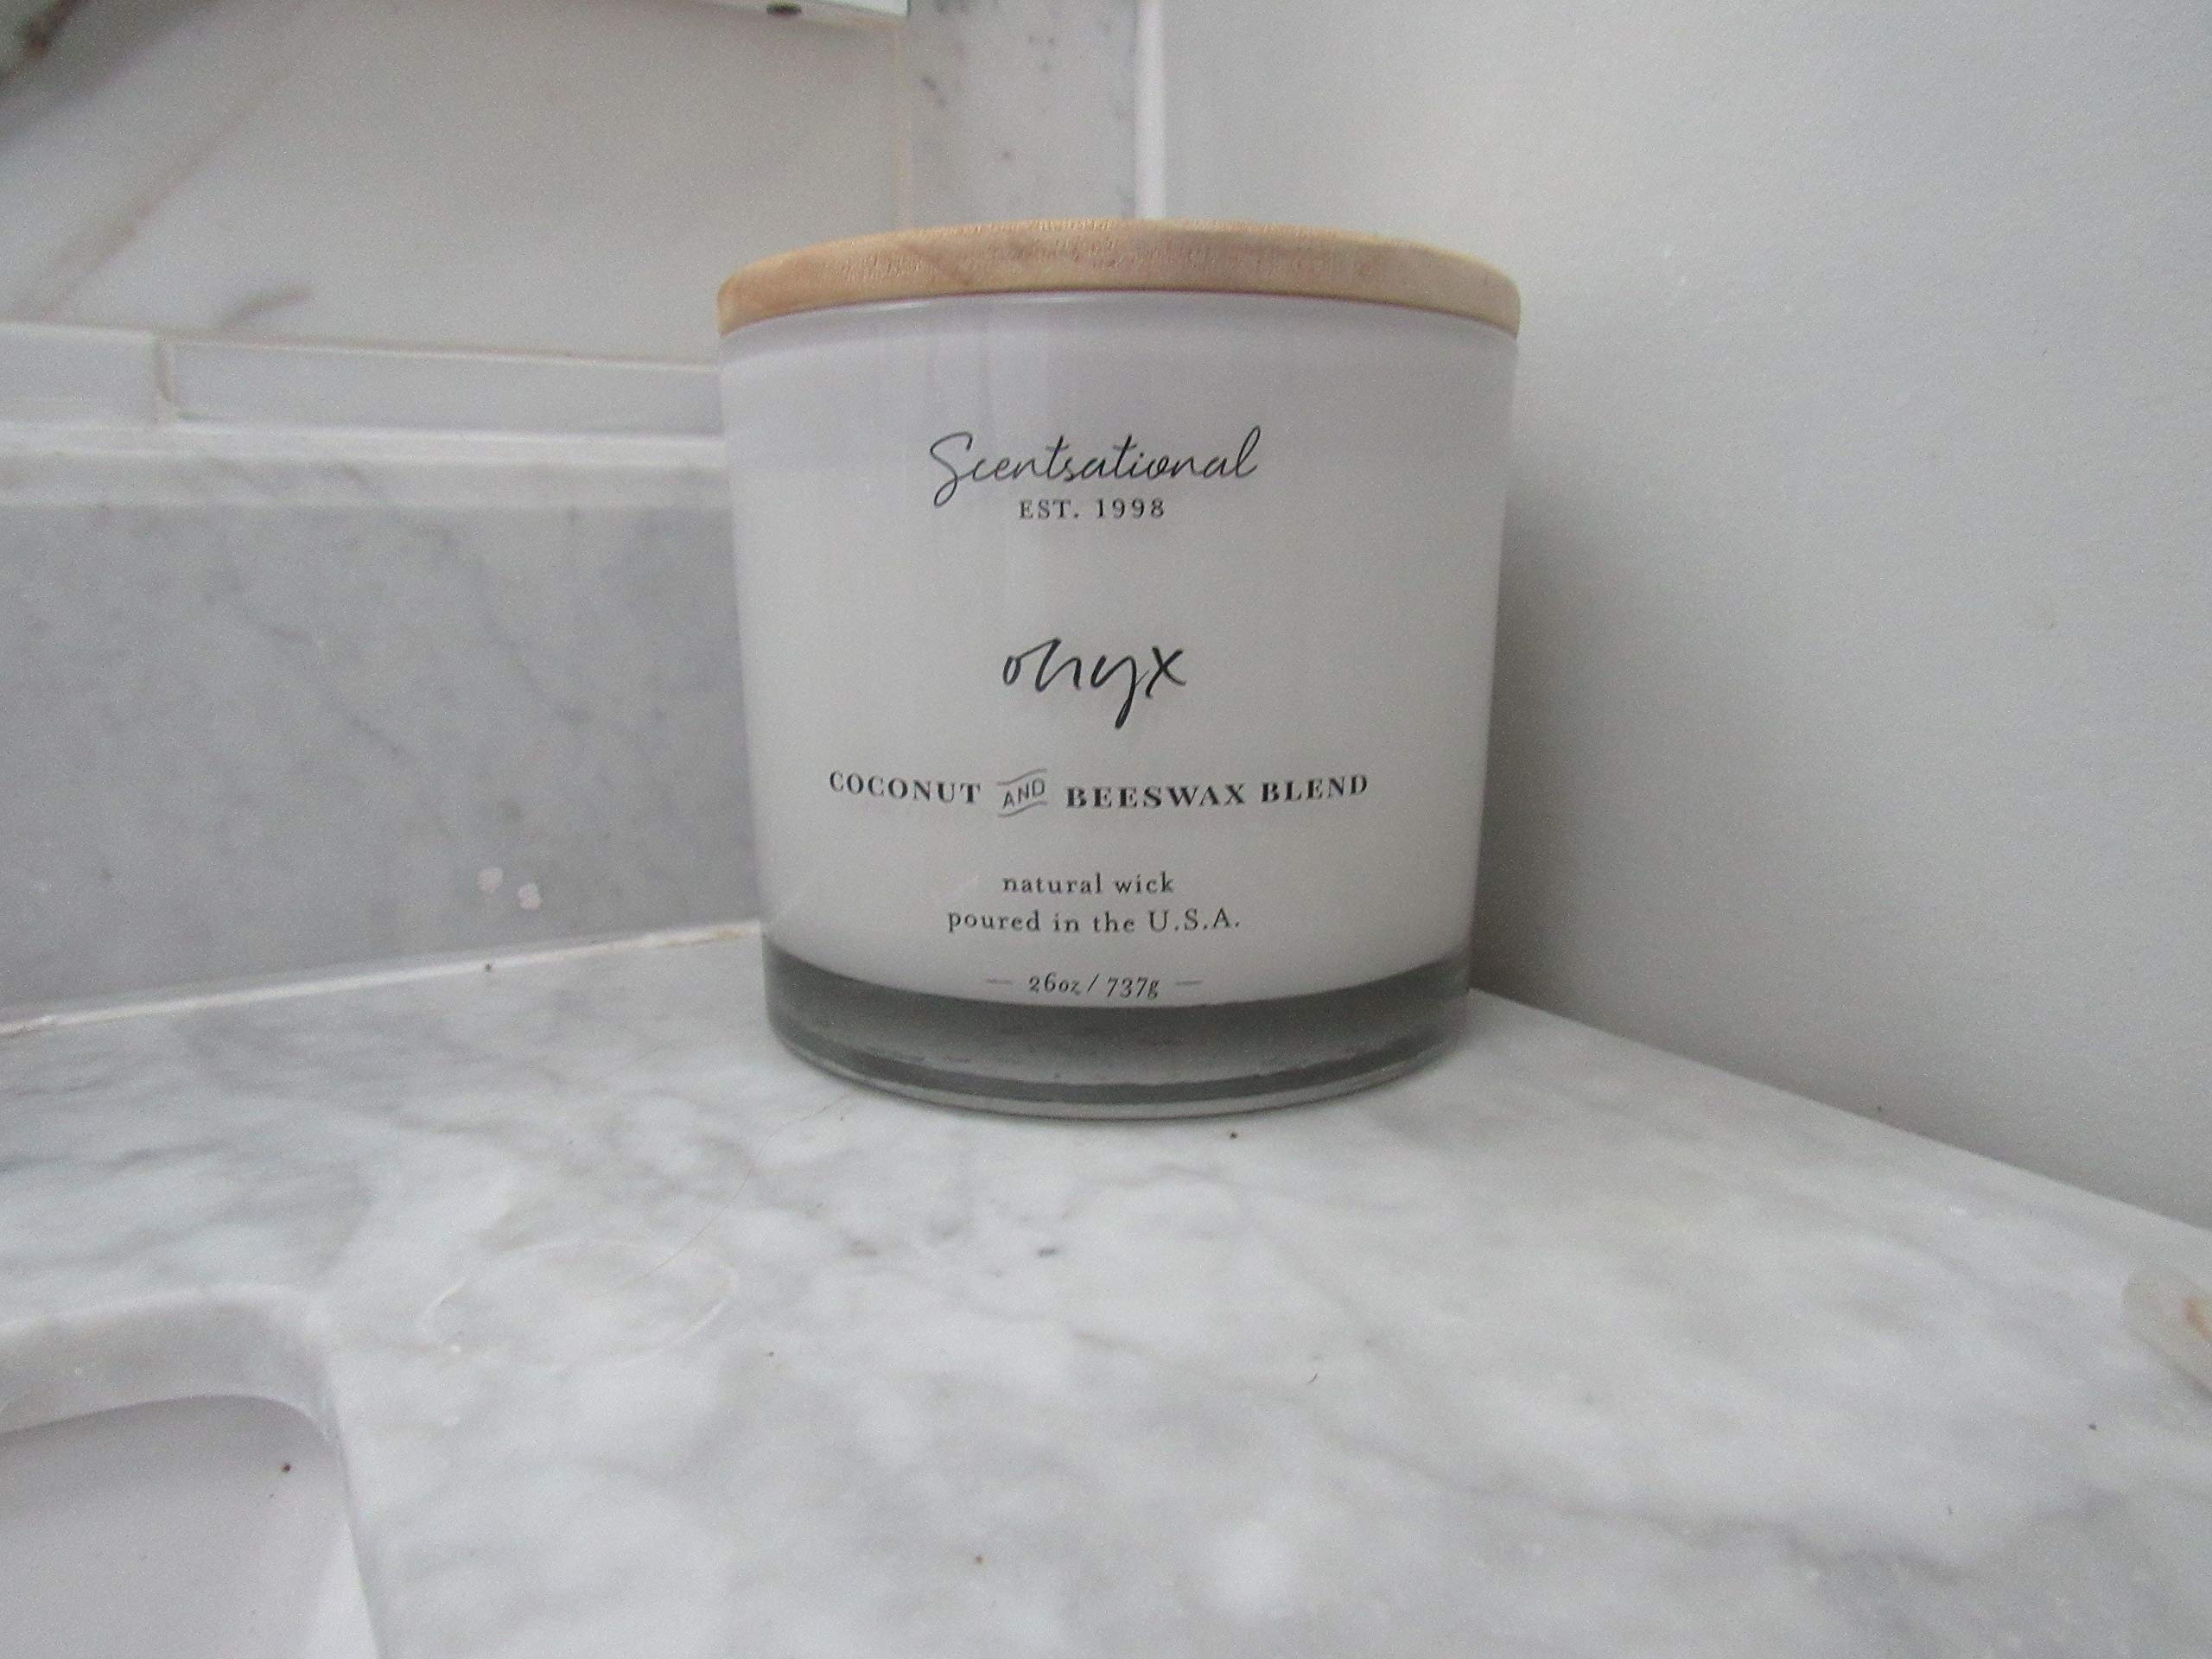 Candle Coconut and Beeswax Blend Sensational Natural 3 Wick 26 oz